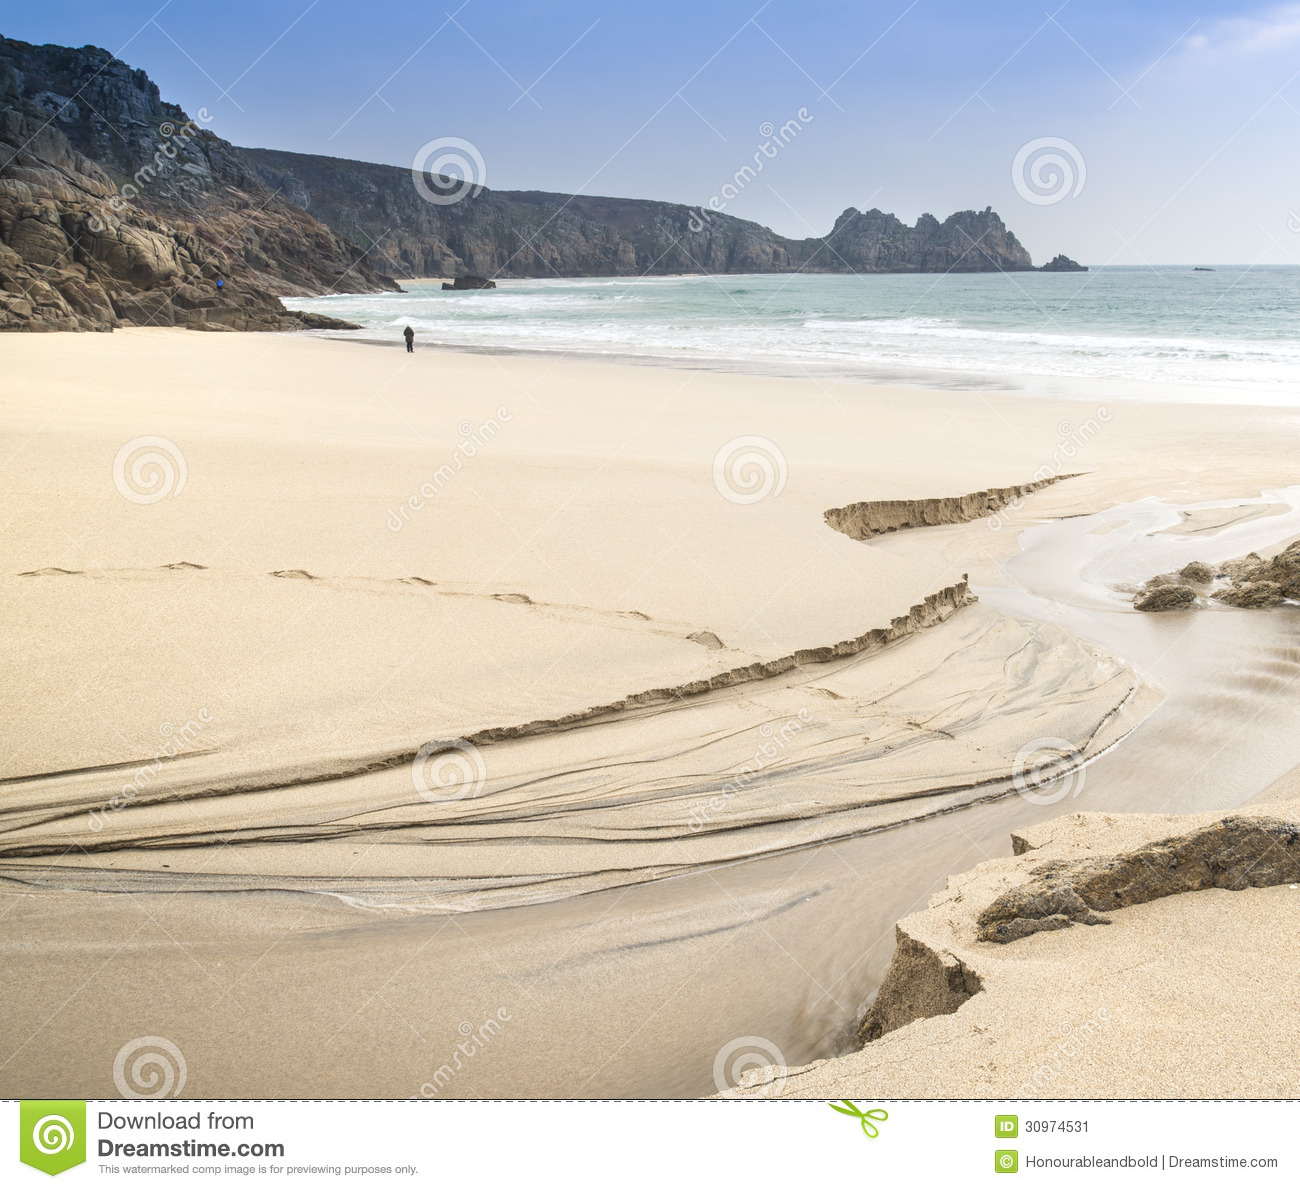 Sandy Beach: Beautiful Sandy Beach Landscape Stock Image